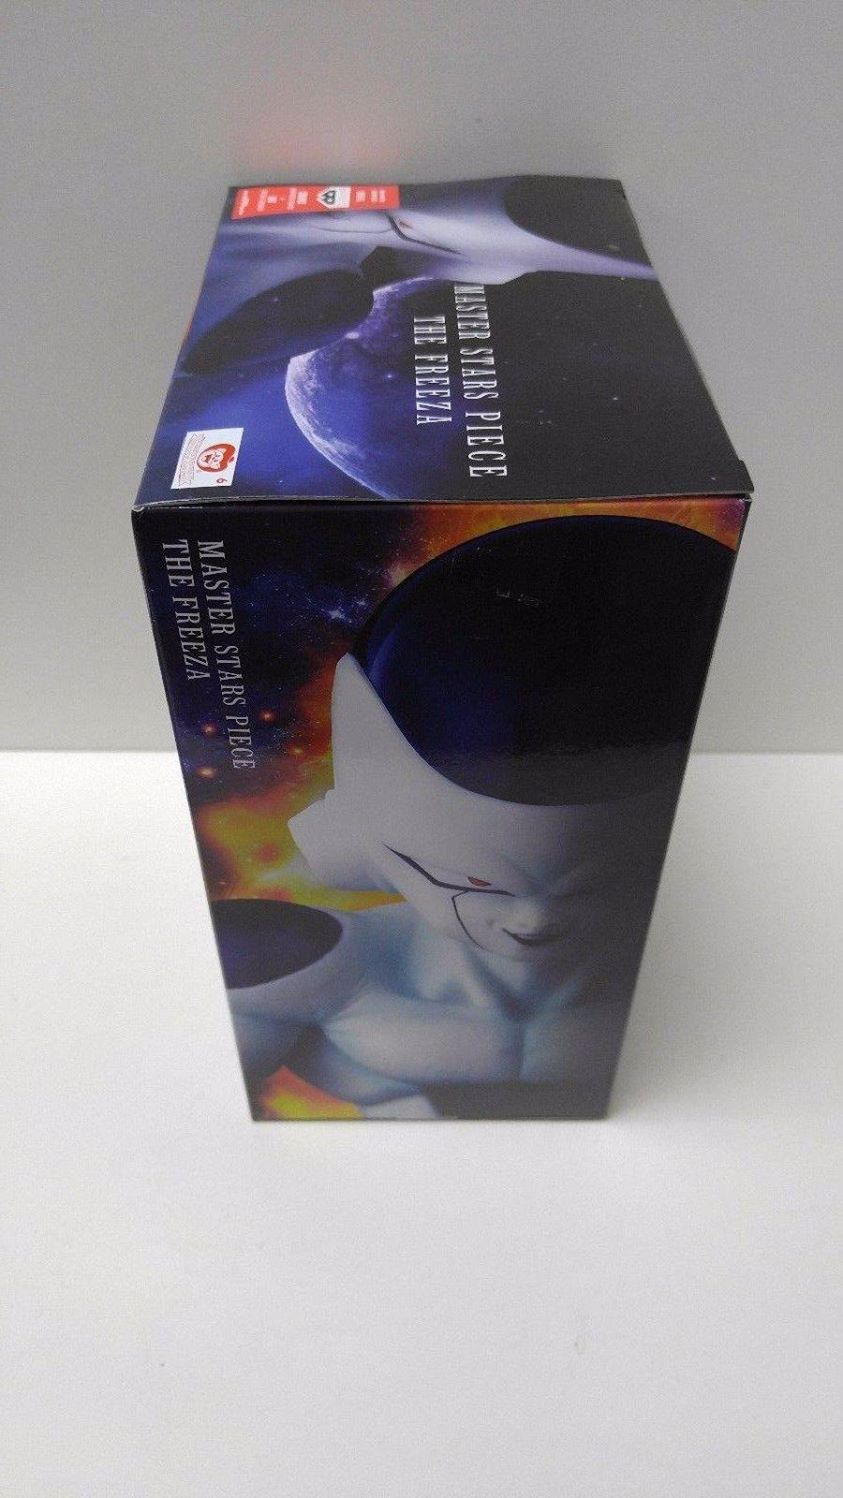 Master Stars Piece The Freeza by Banpresto